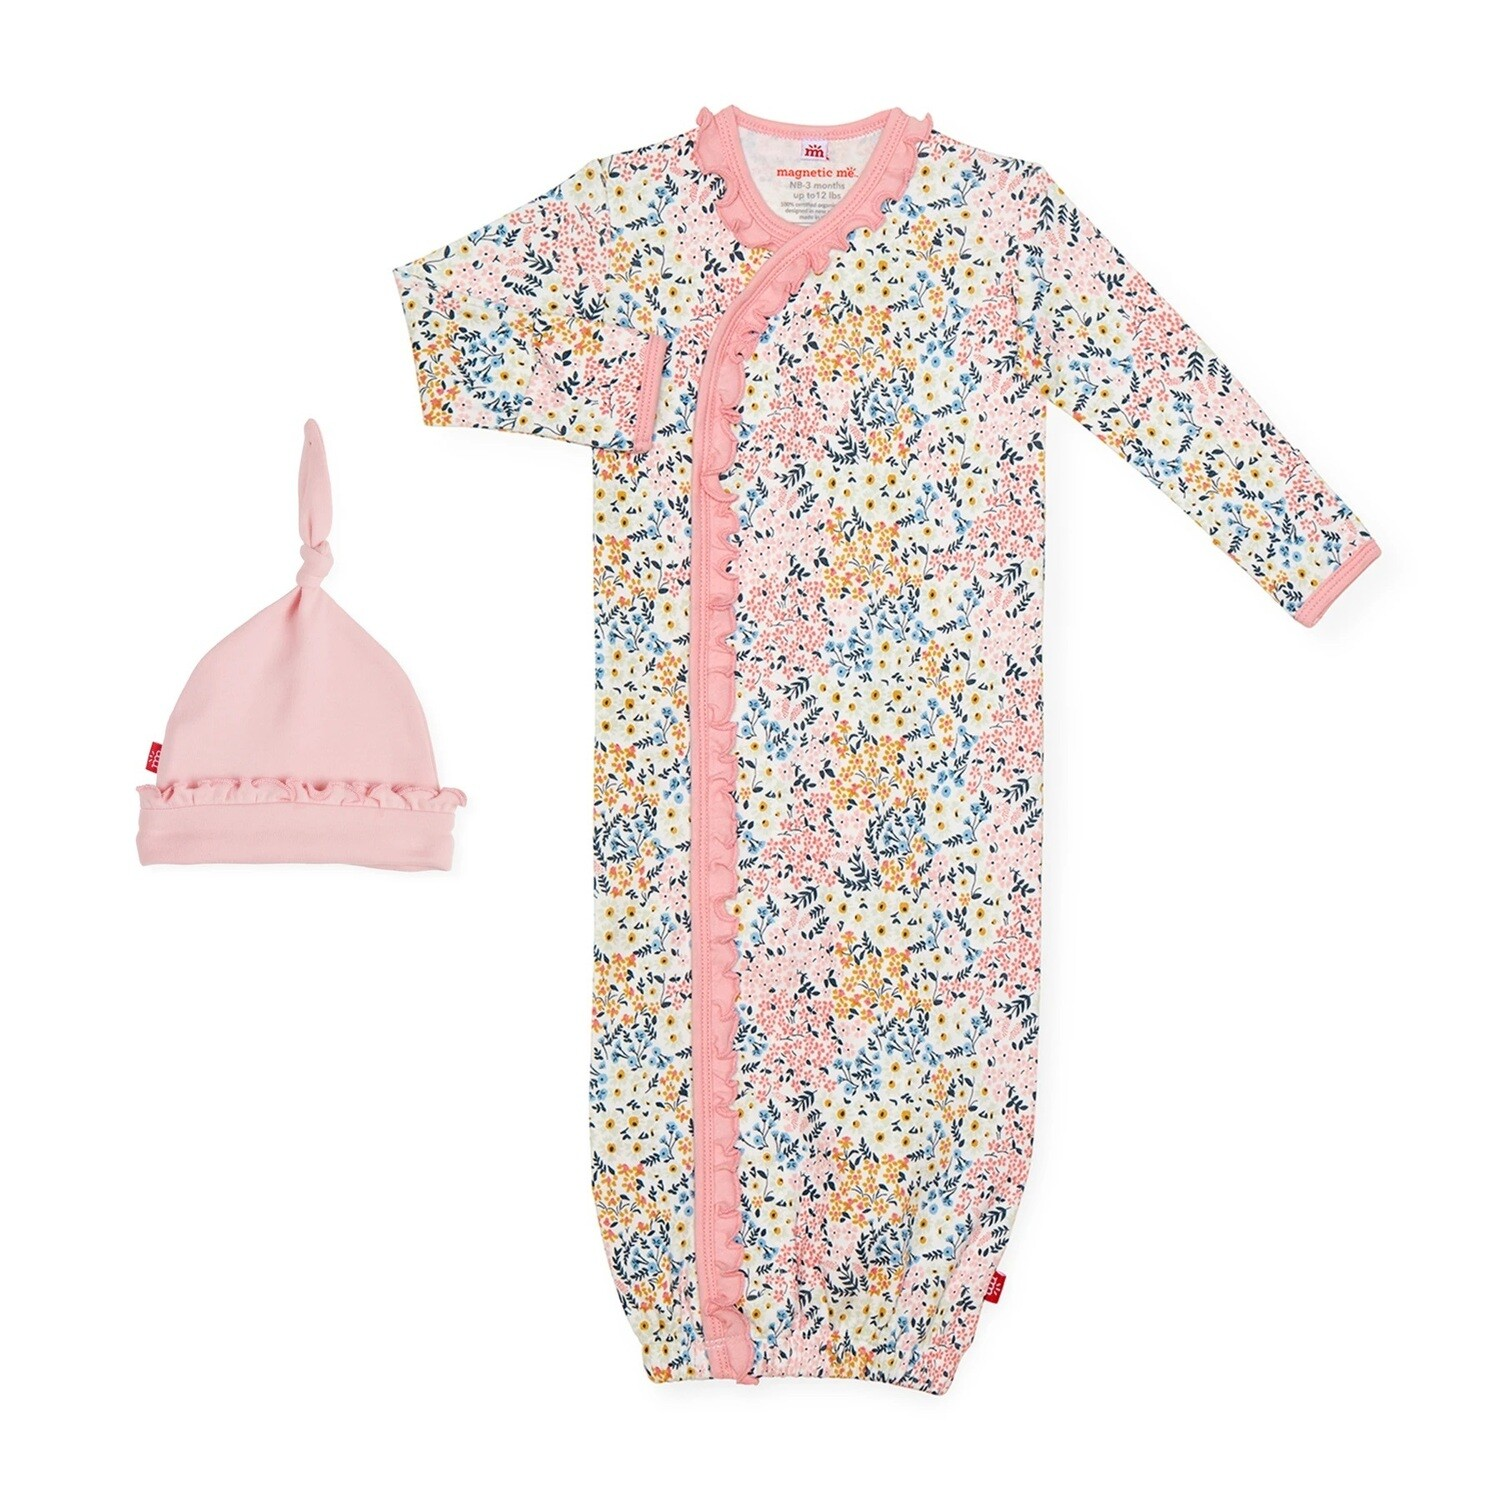 Magnetic Me Chelsea Organic Cotton Gown & Hat 1418